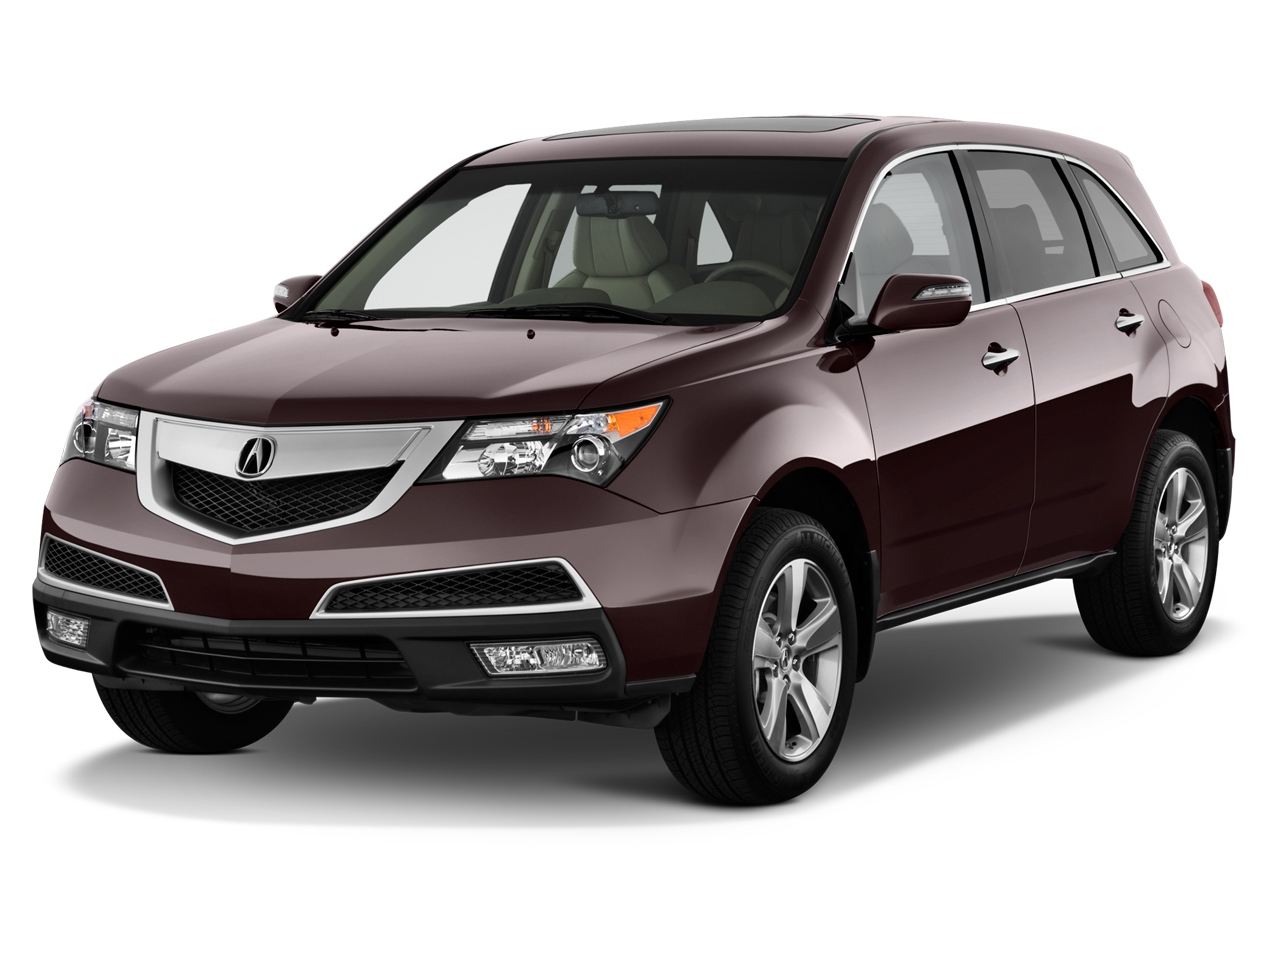 2013 Acura MDX Review, Ratings, Specs, Prices, and Photos ...